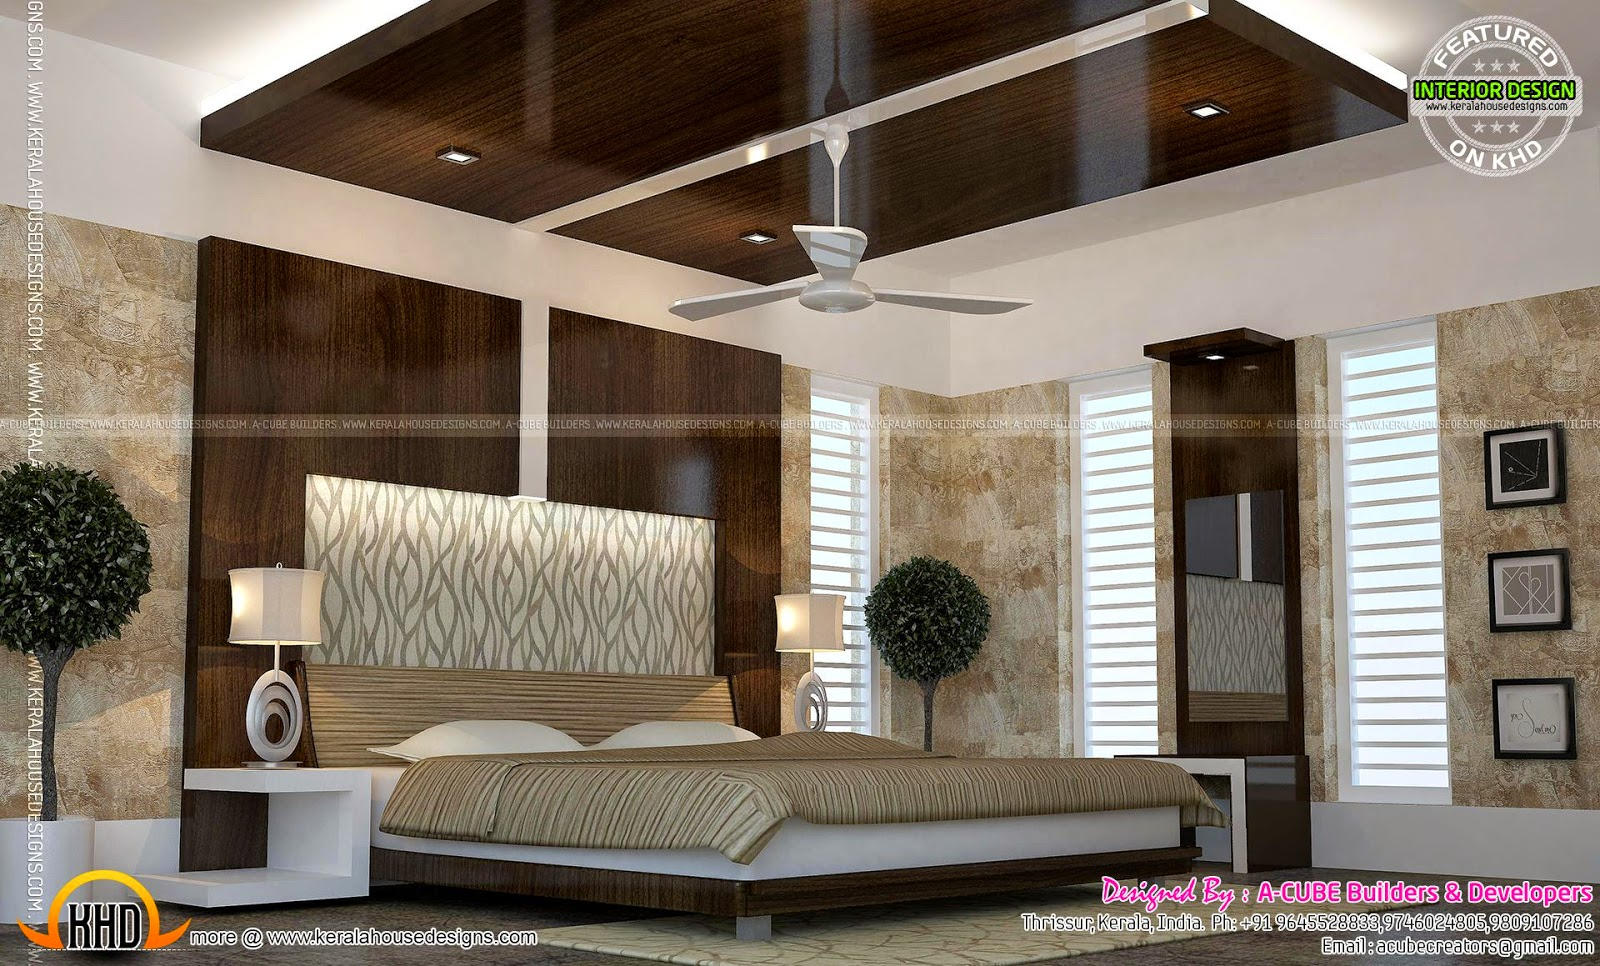 Kerala interior design ideas kerala home design and for Interior designs of a house